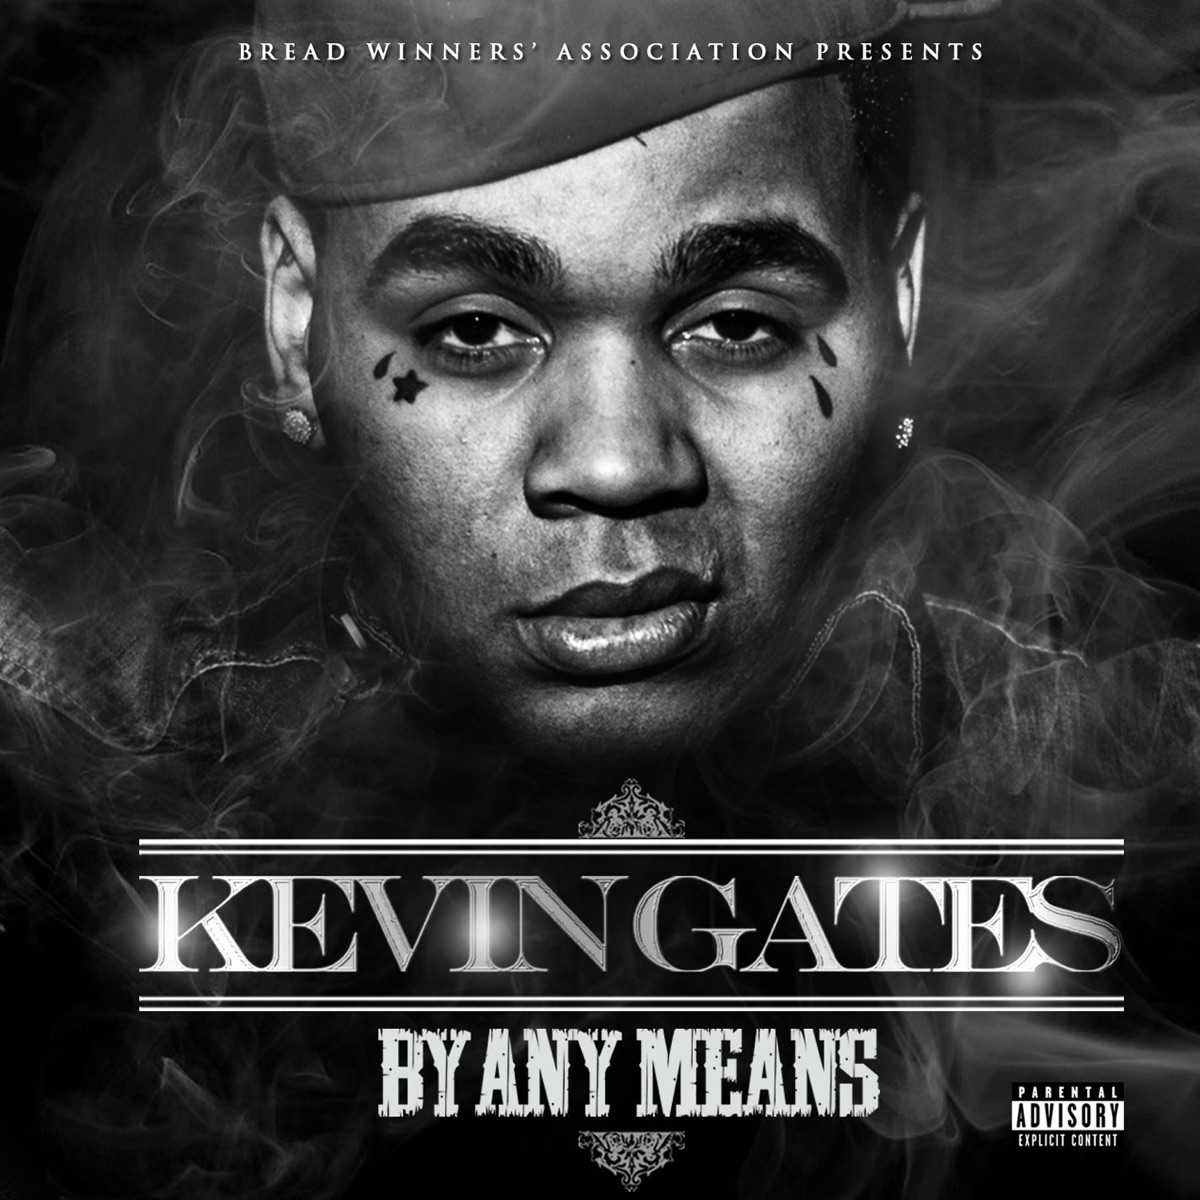 By Any Means Album Cover by Kevin Gates